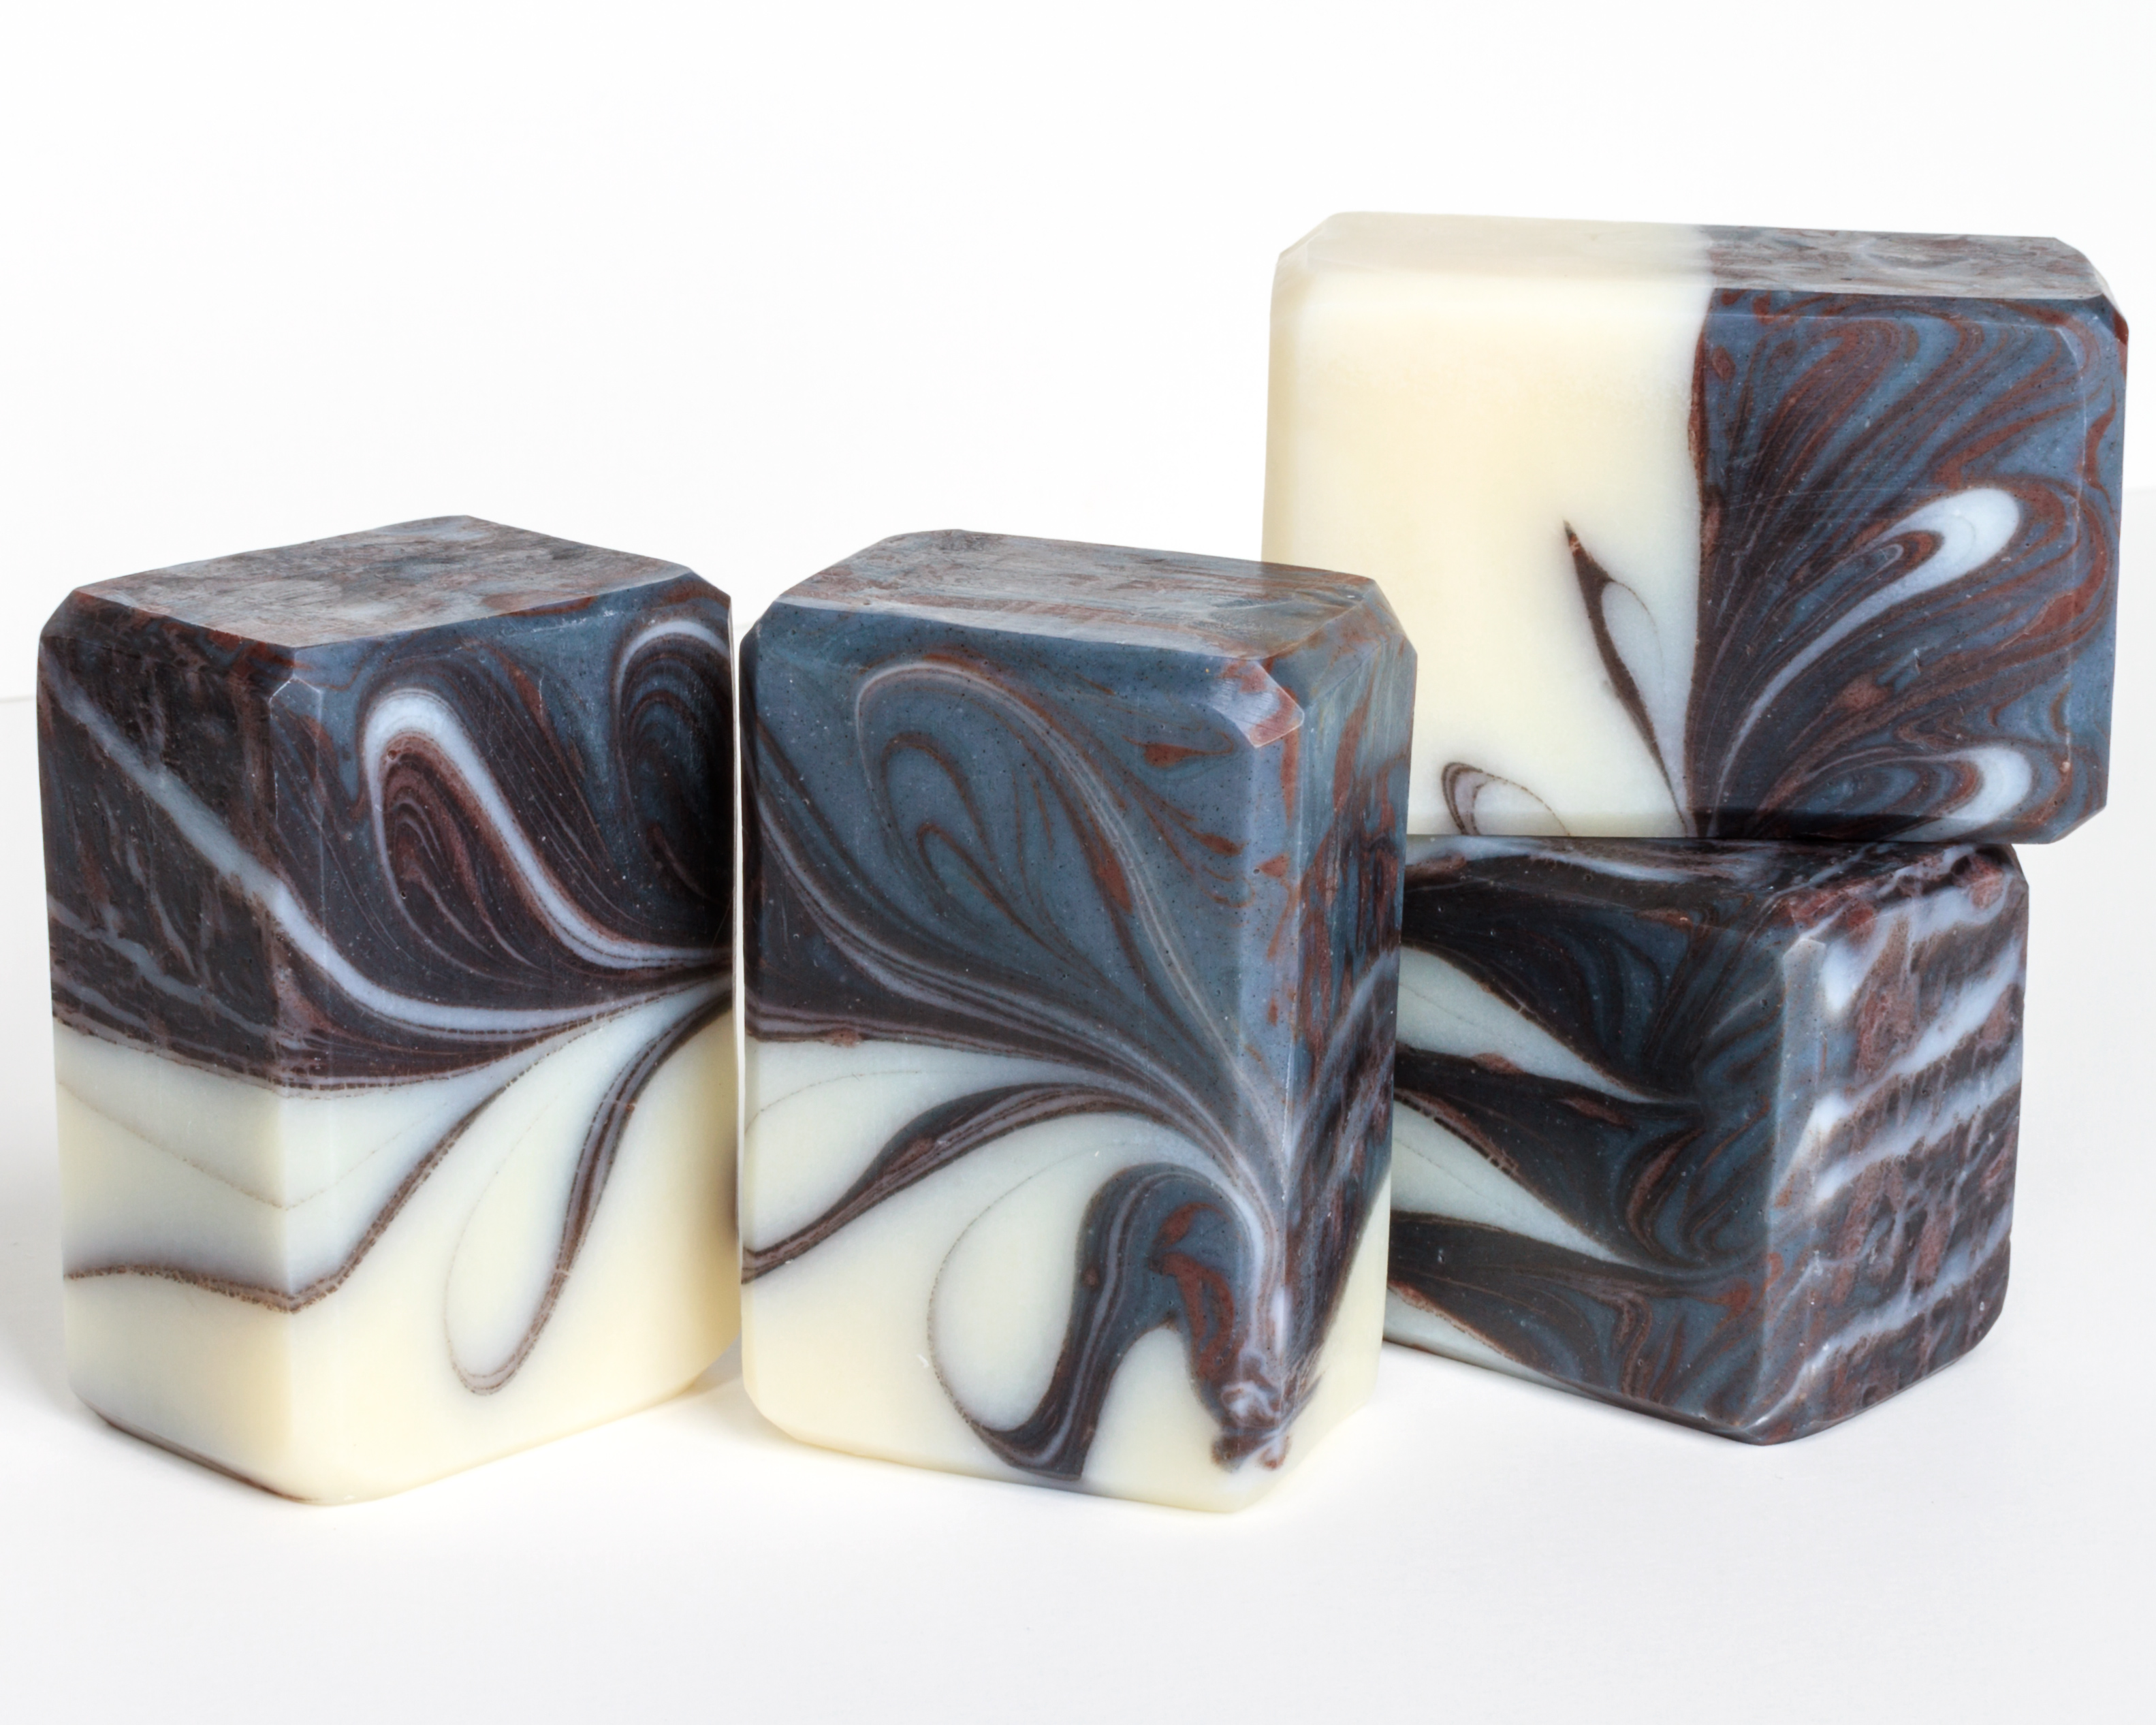 rosemary mint mantra marble